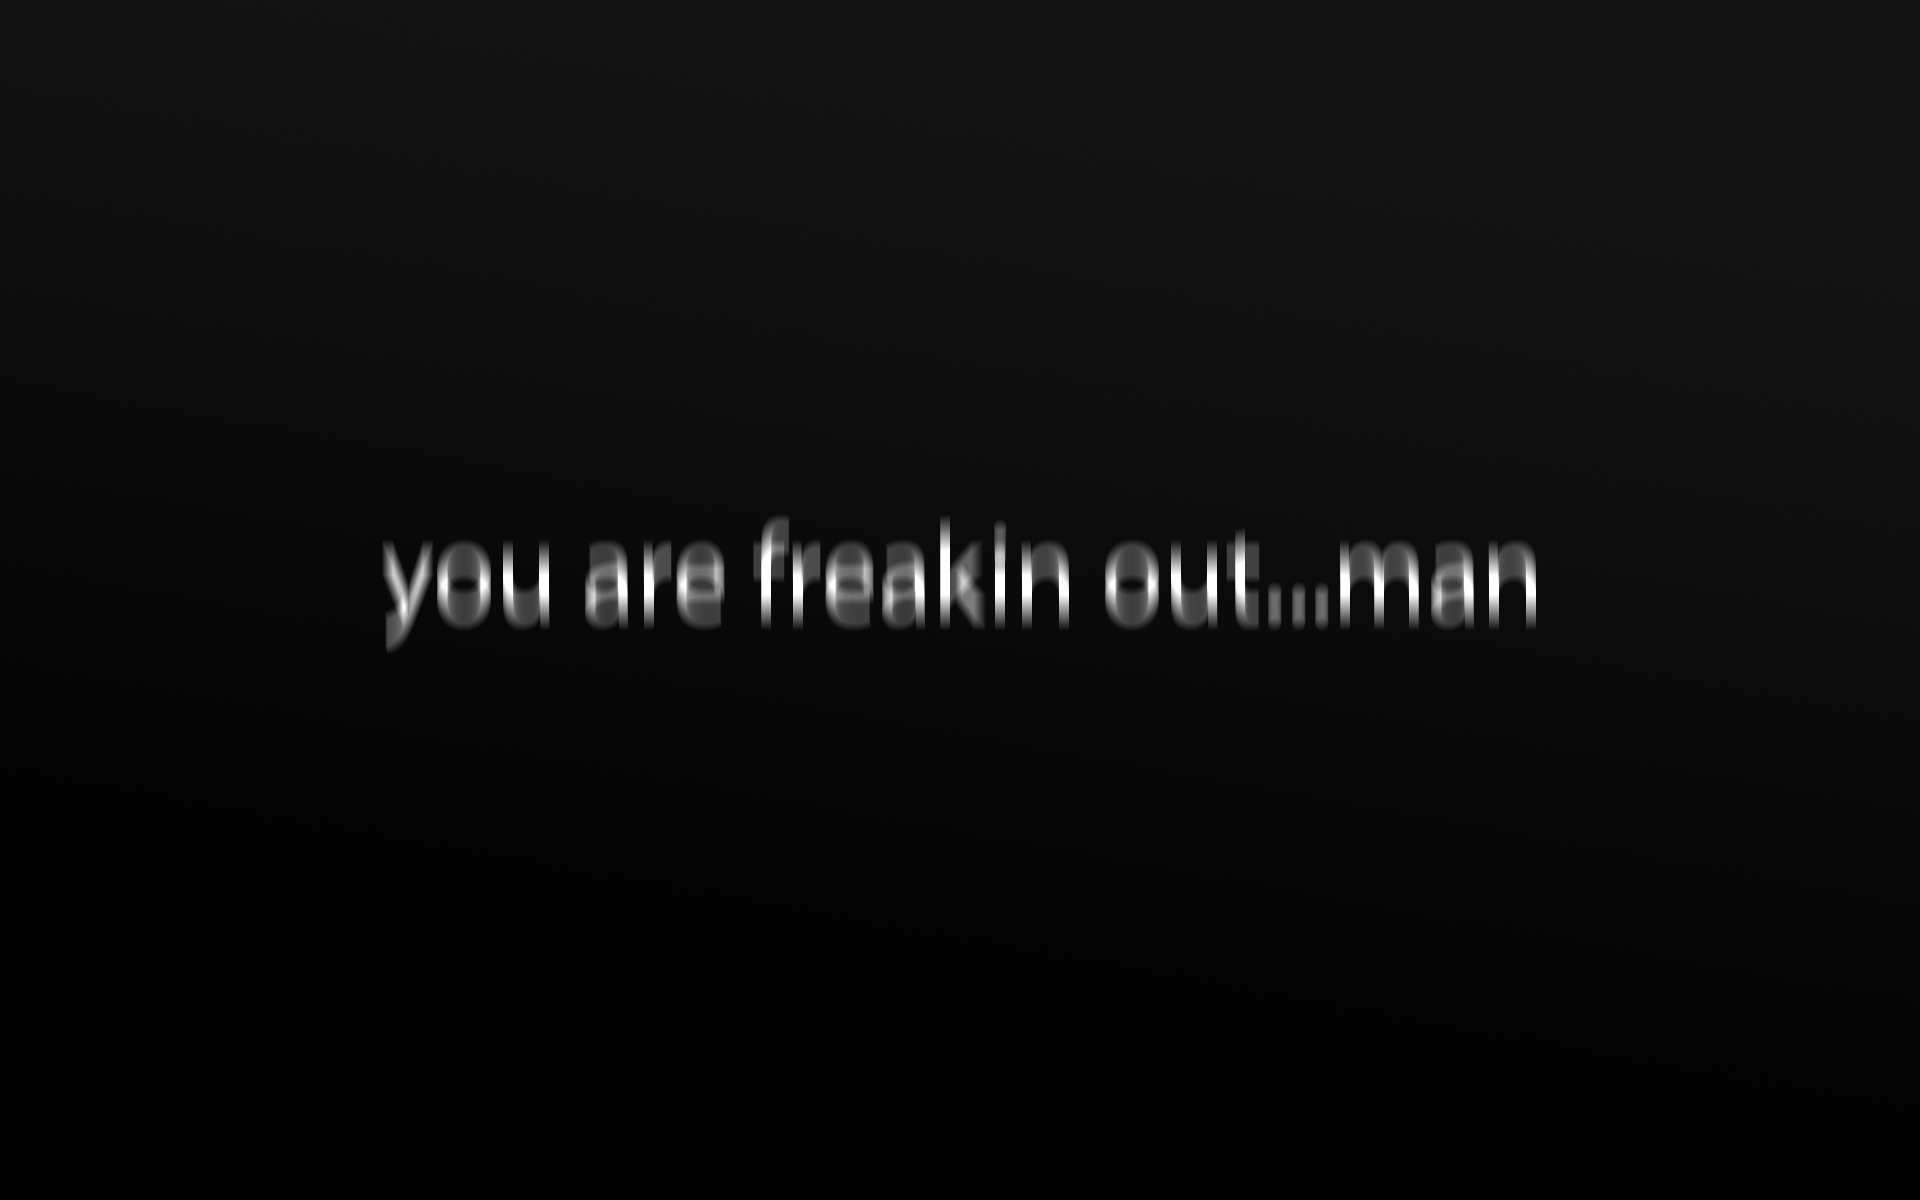 Iphone 5 inspirational wallpaper tumblr - You Are Freaking Out Man Wallpaper 691264